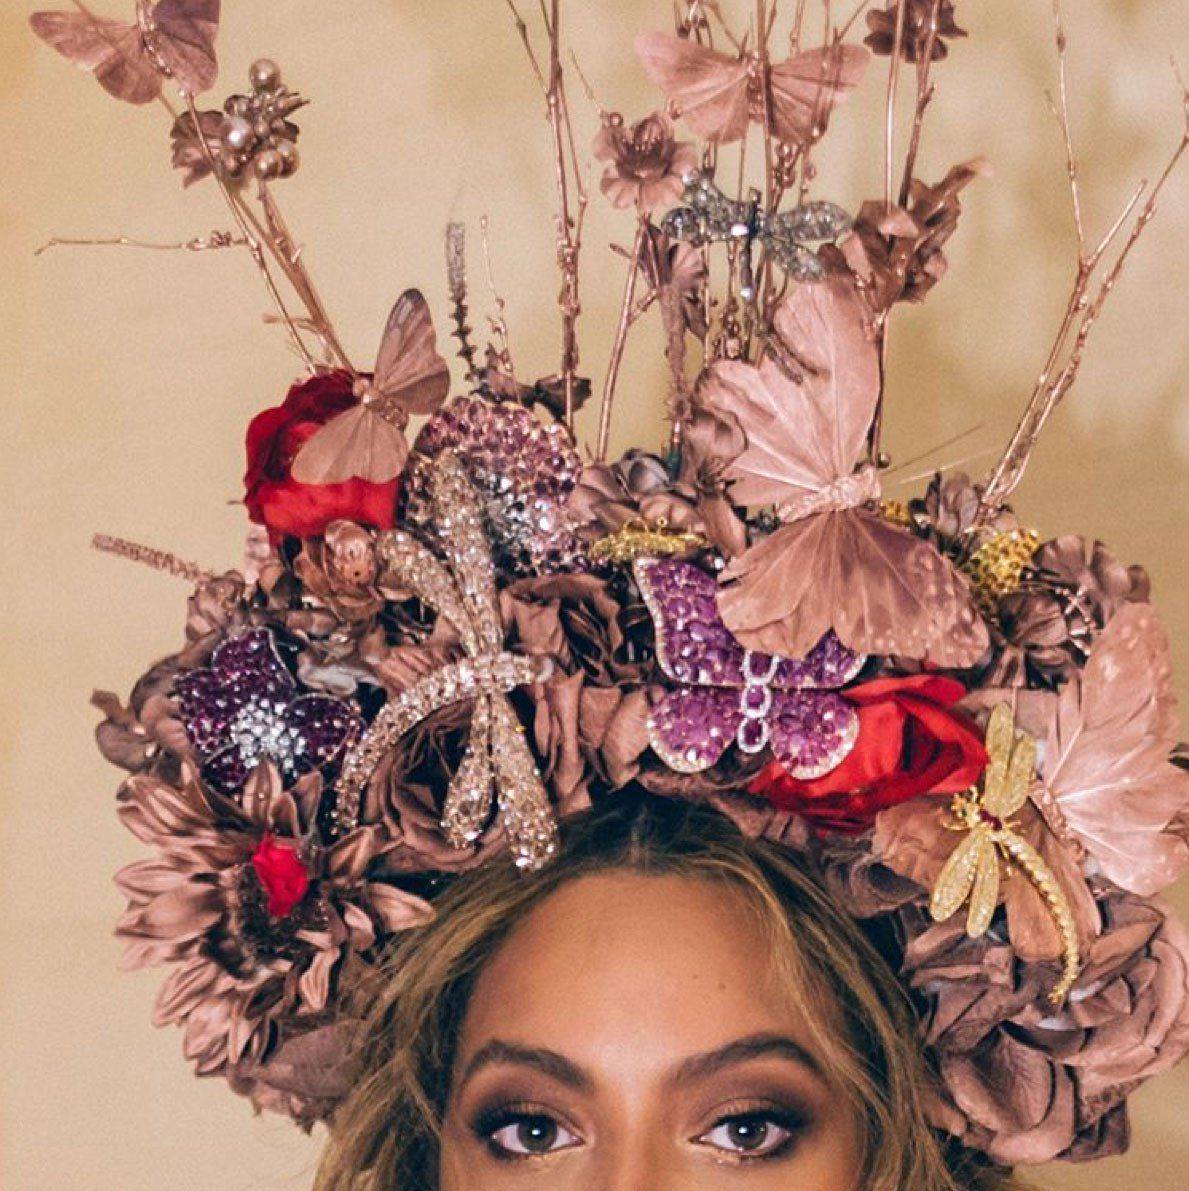 Beyoncé Continues to Nail Her Pregnancy Style in Red Gown and Headdress at the Wearable Art Gala #wearableart